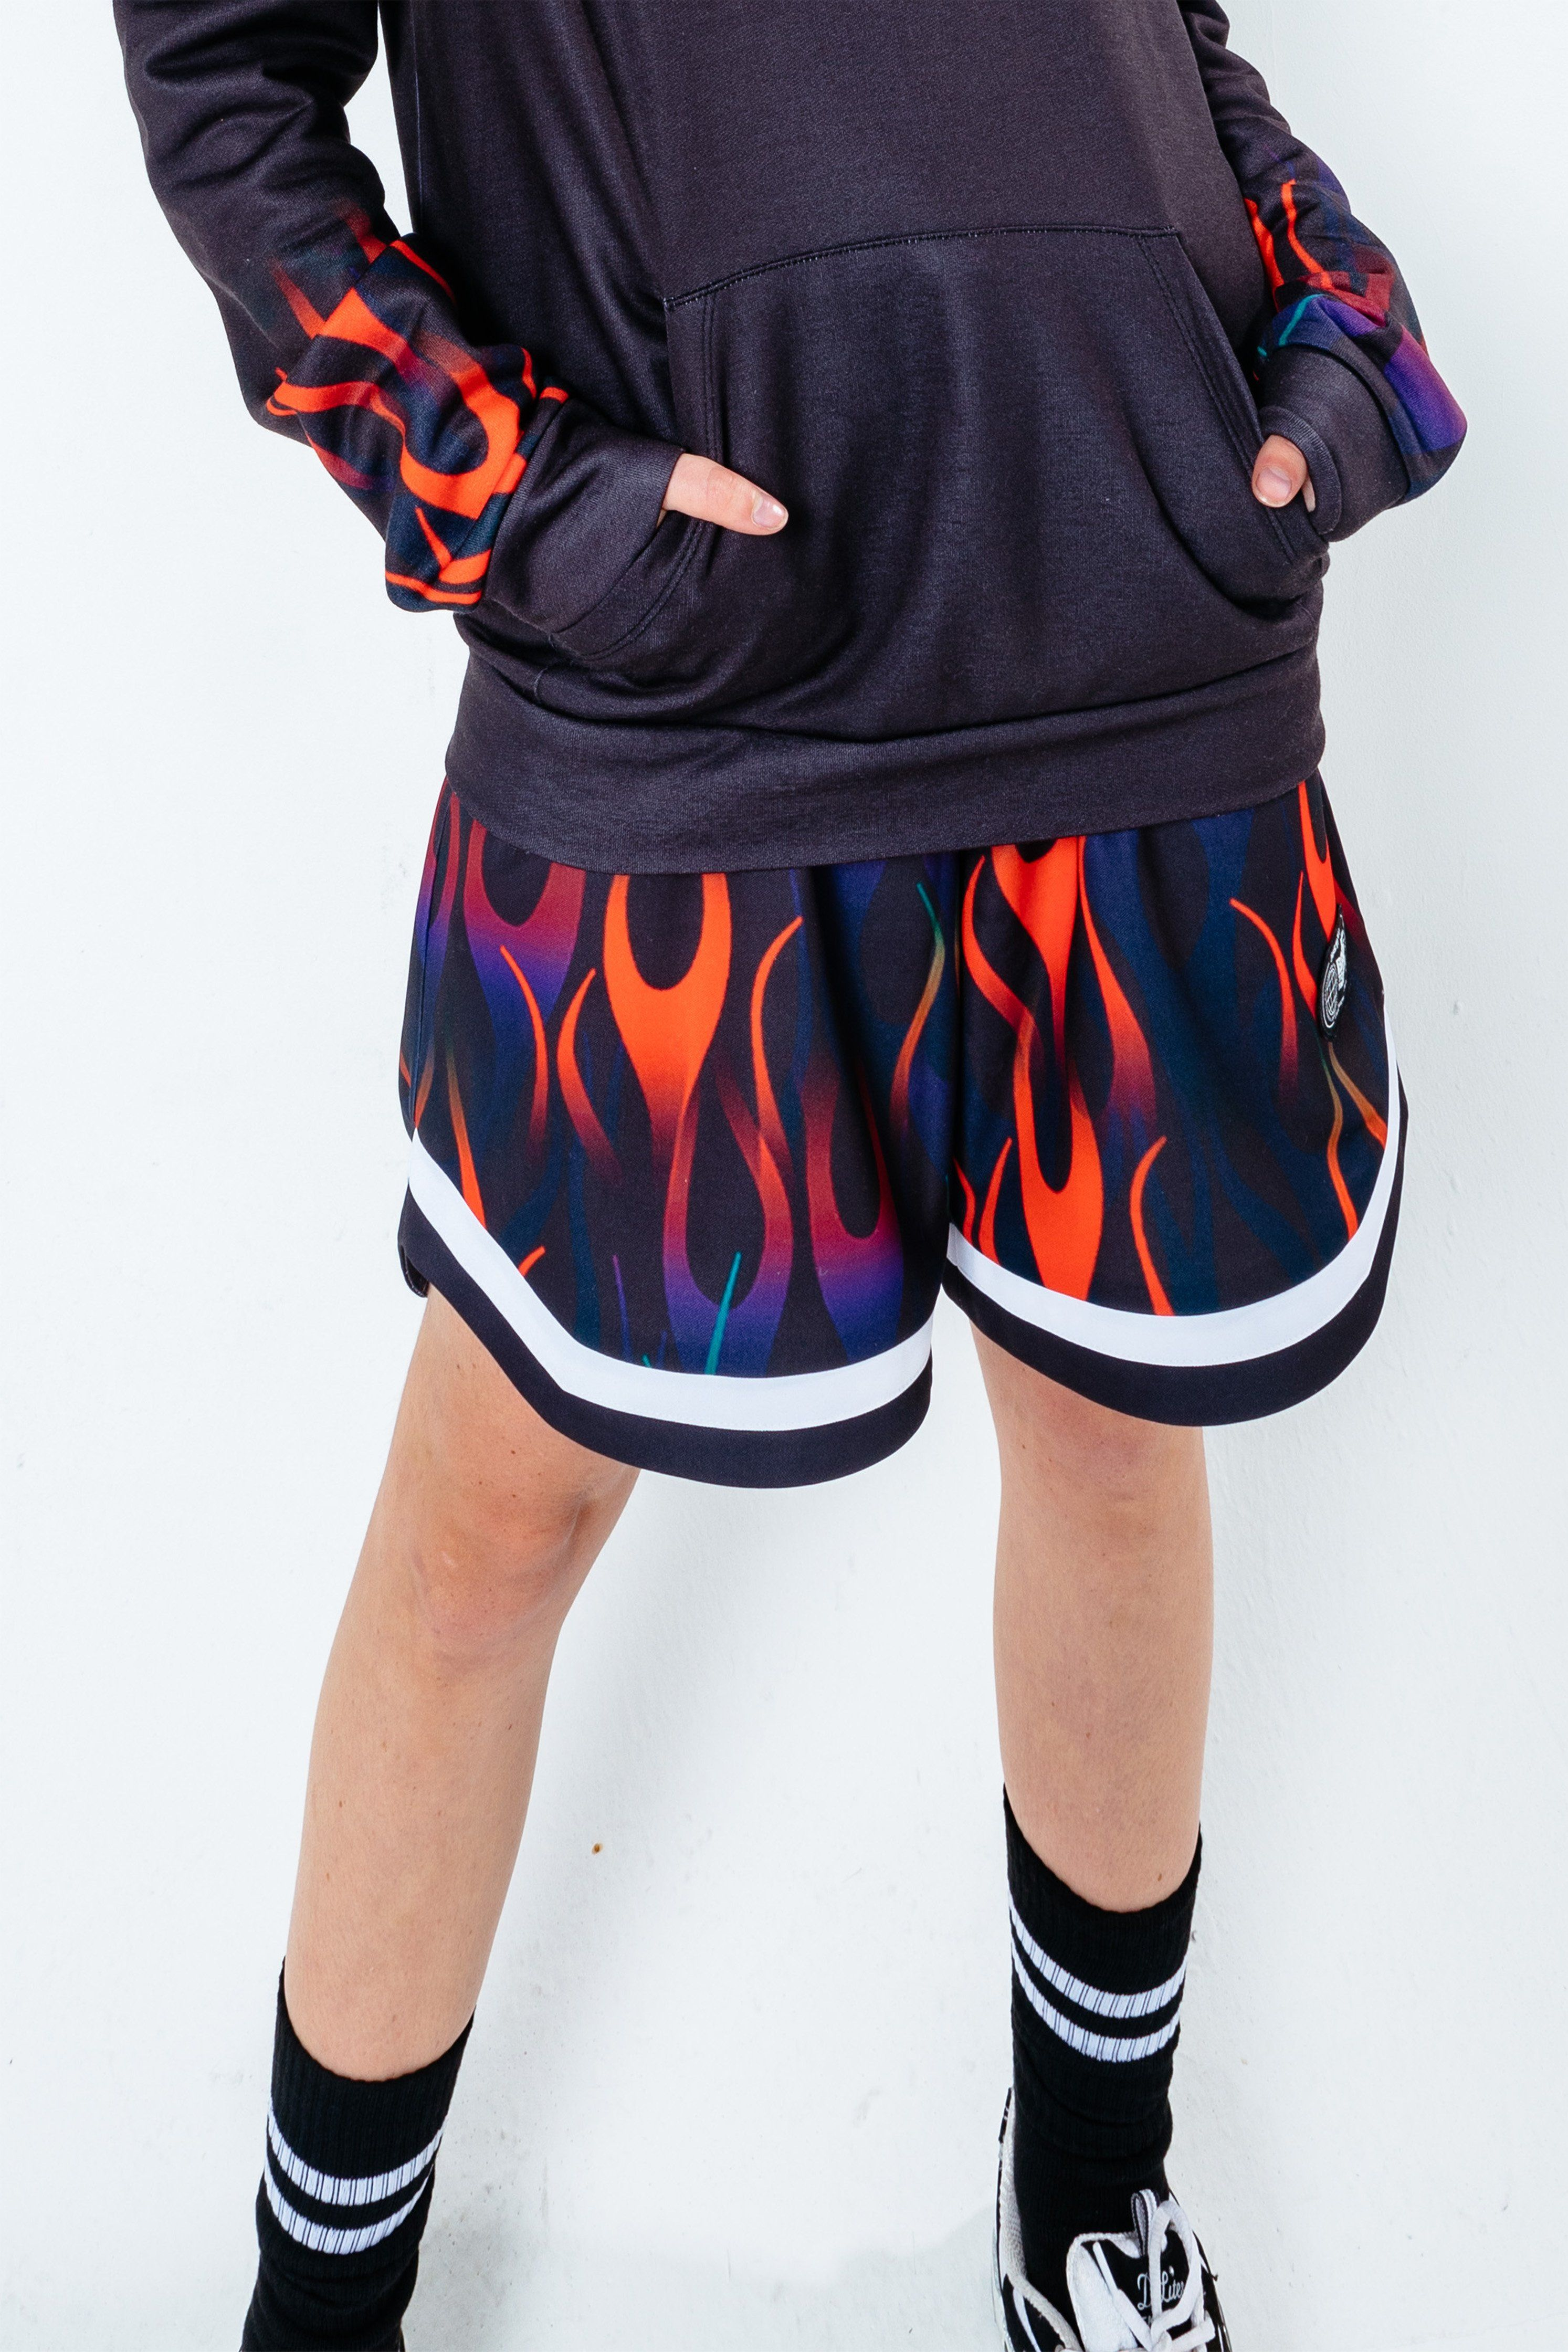 HYPE X BACK TO THE FUTURE BLACK FLAME BASKETBALL SHORTS